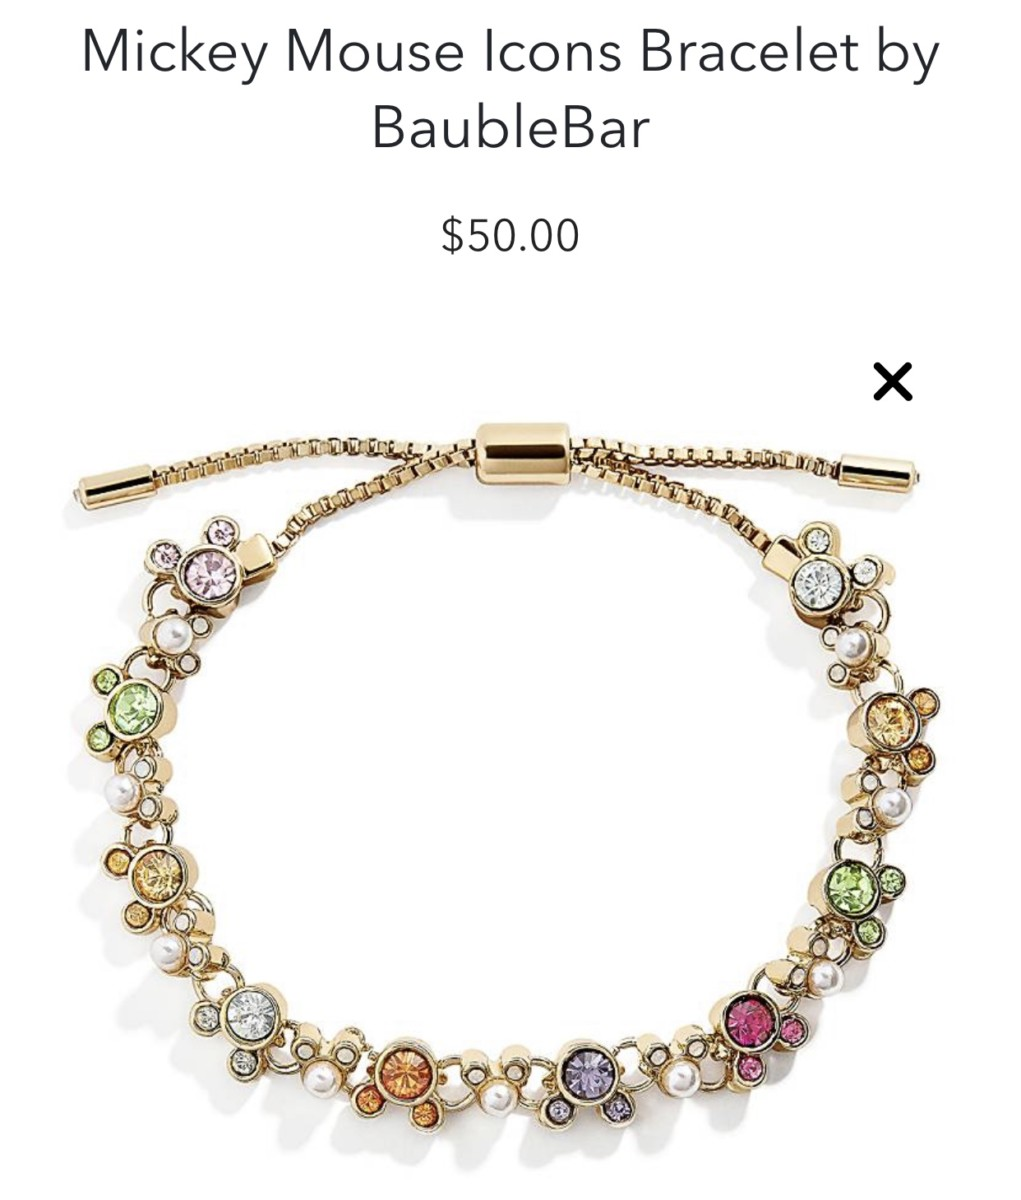 New Baublebar Disney Parks Jewelry on shopDisney 2